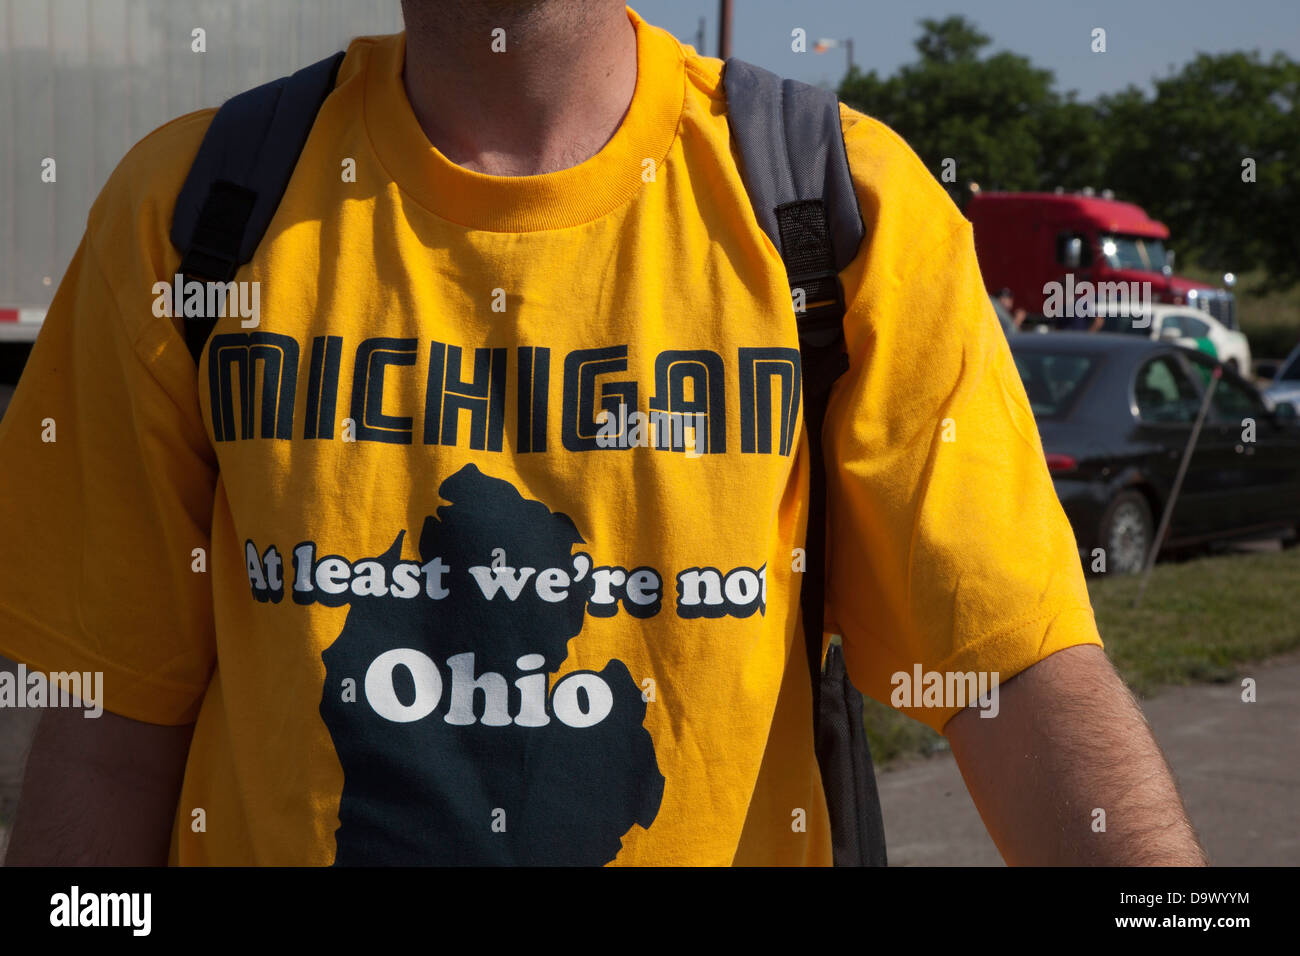 Detroit, Michigan - A man wears a t-shirt with the message: 'Michigan--at least we're not Ohio.' - Stock Image